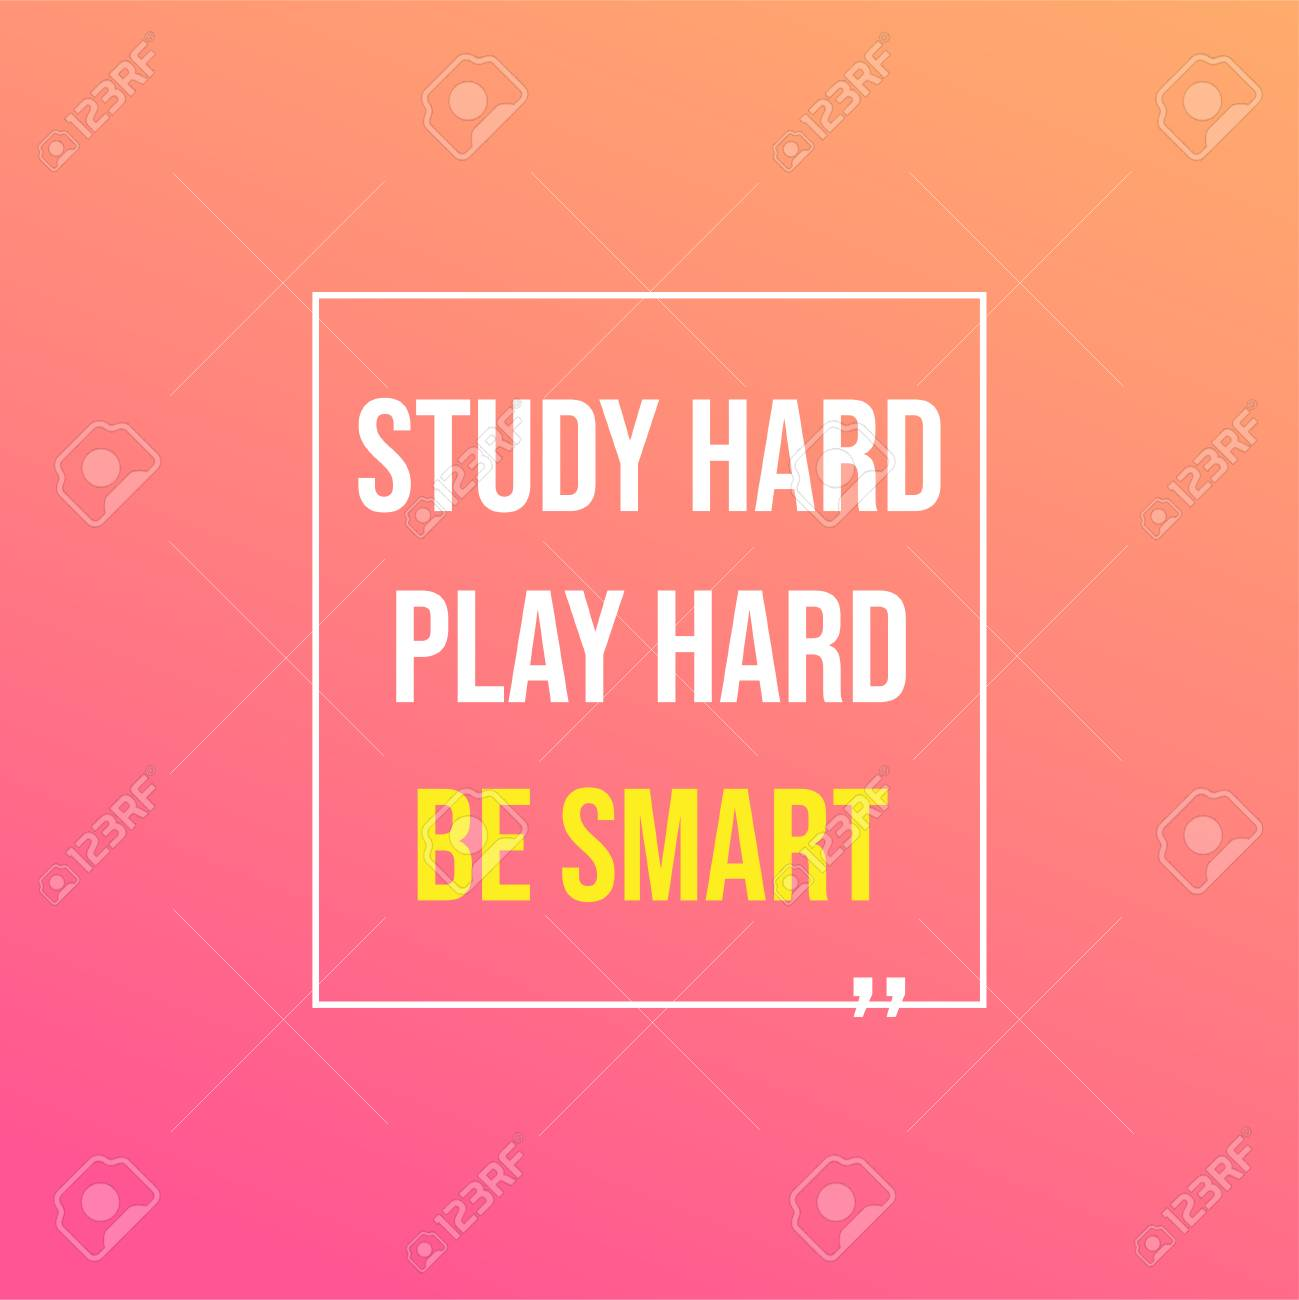 Study hard, play hard, and be smart. Education quote with modern background illustration - 124890447